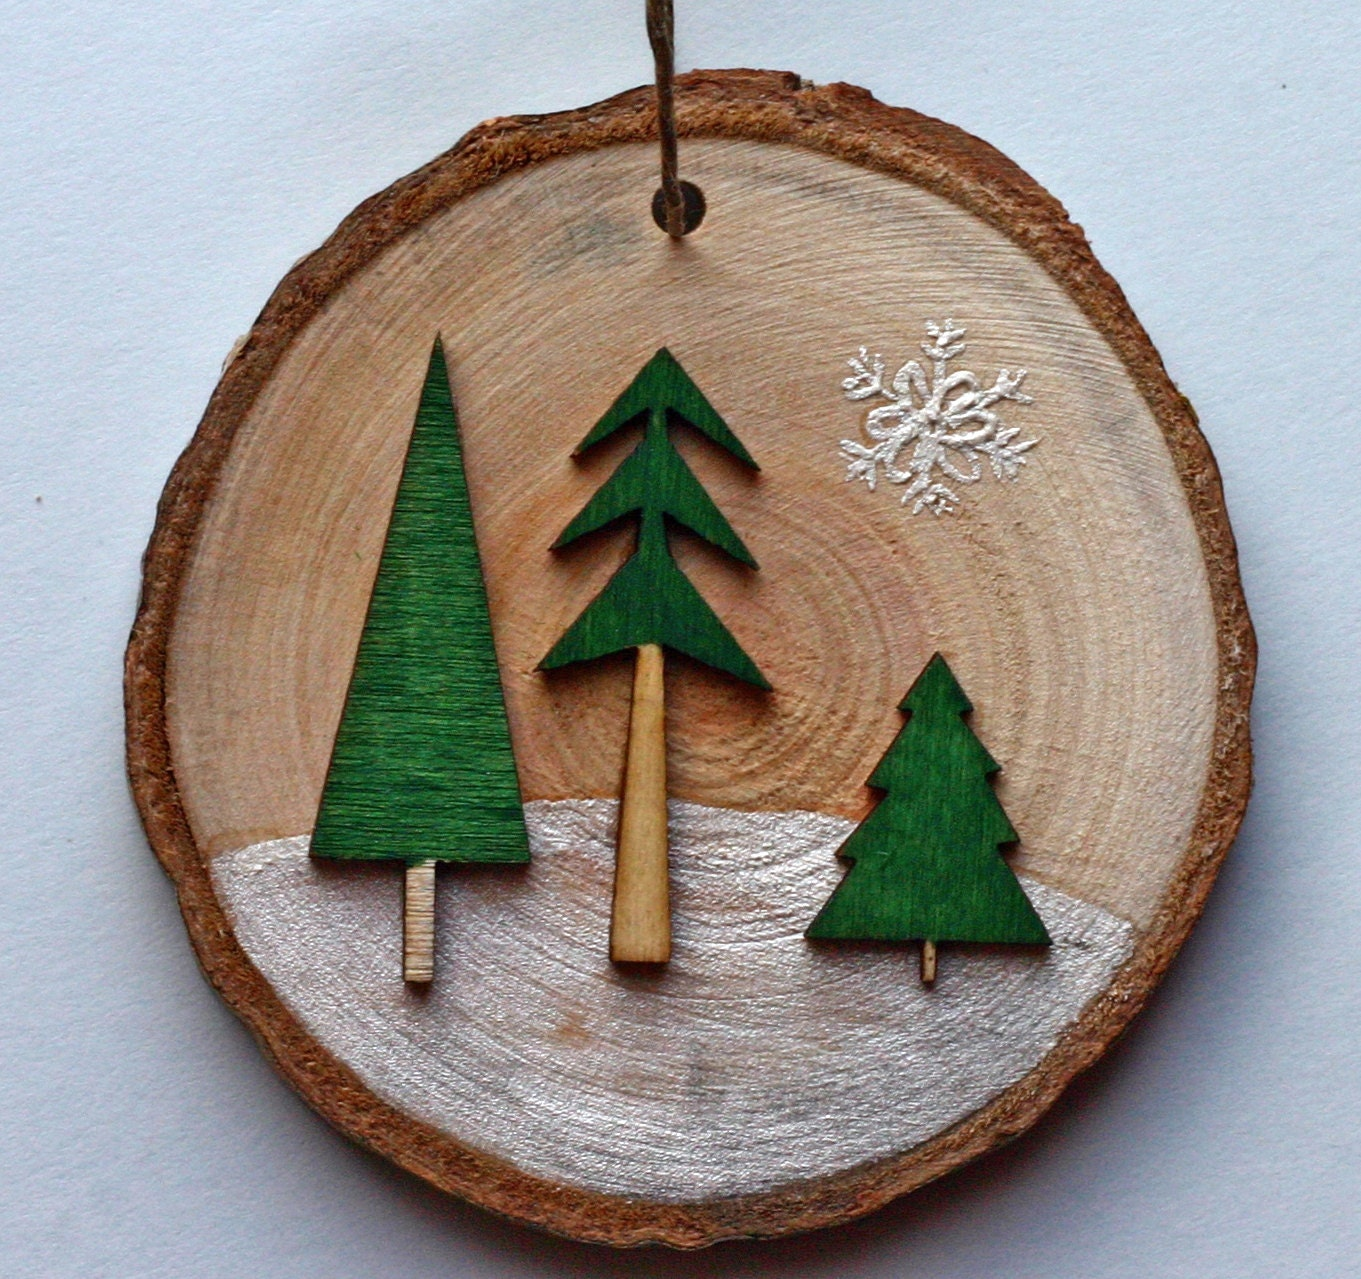 Winter scene on birch wood birch tree slice, green trees in snow, woods, natural, ornament, green and brown, snow, three dimensional - DeborahMcGeeArt